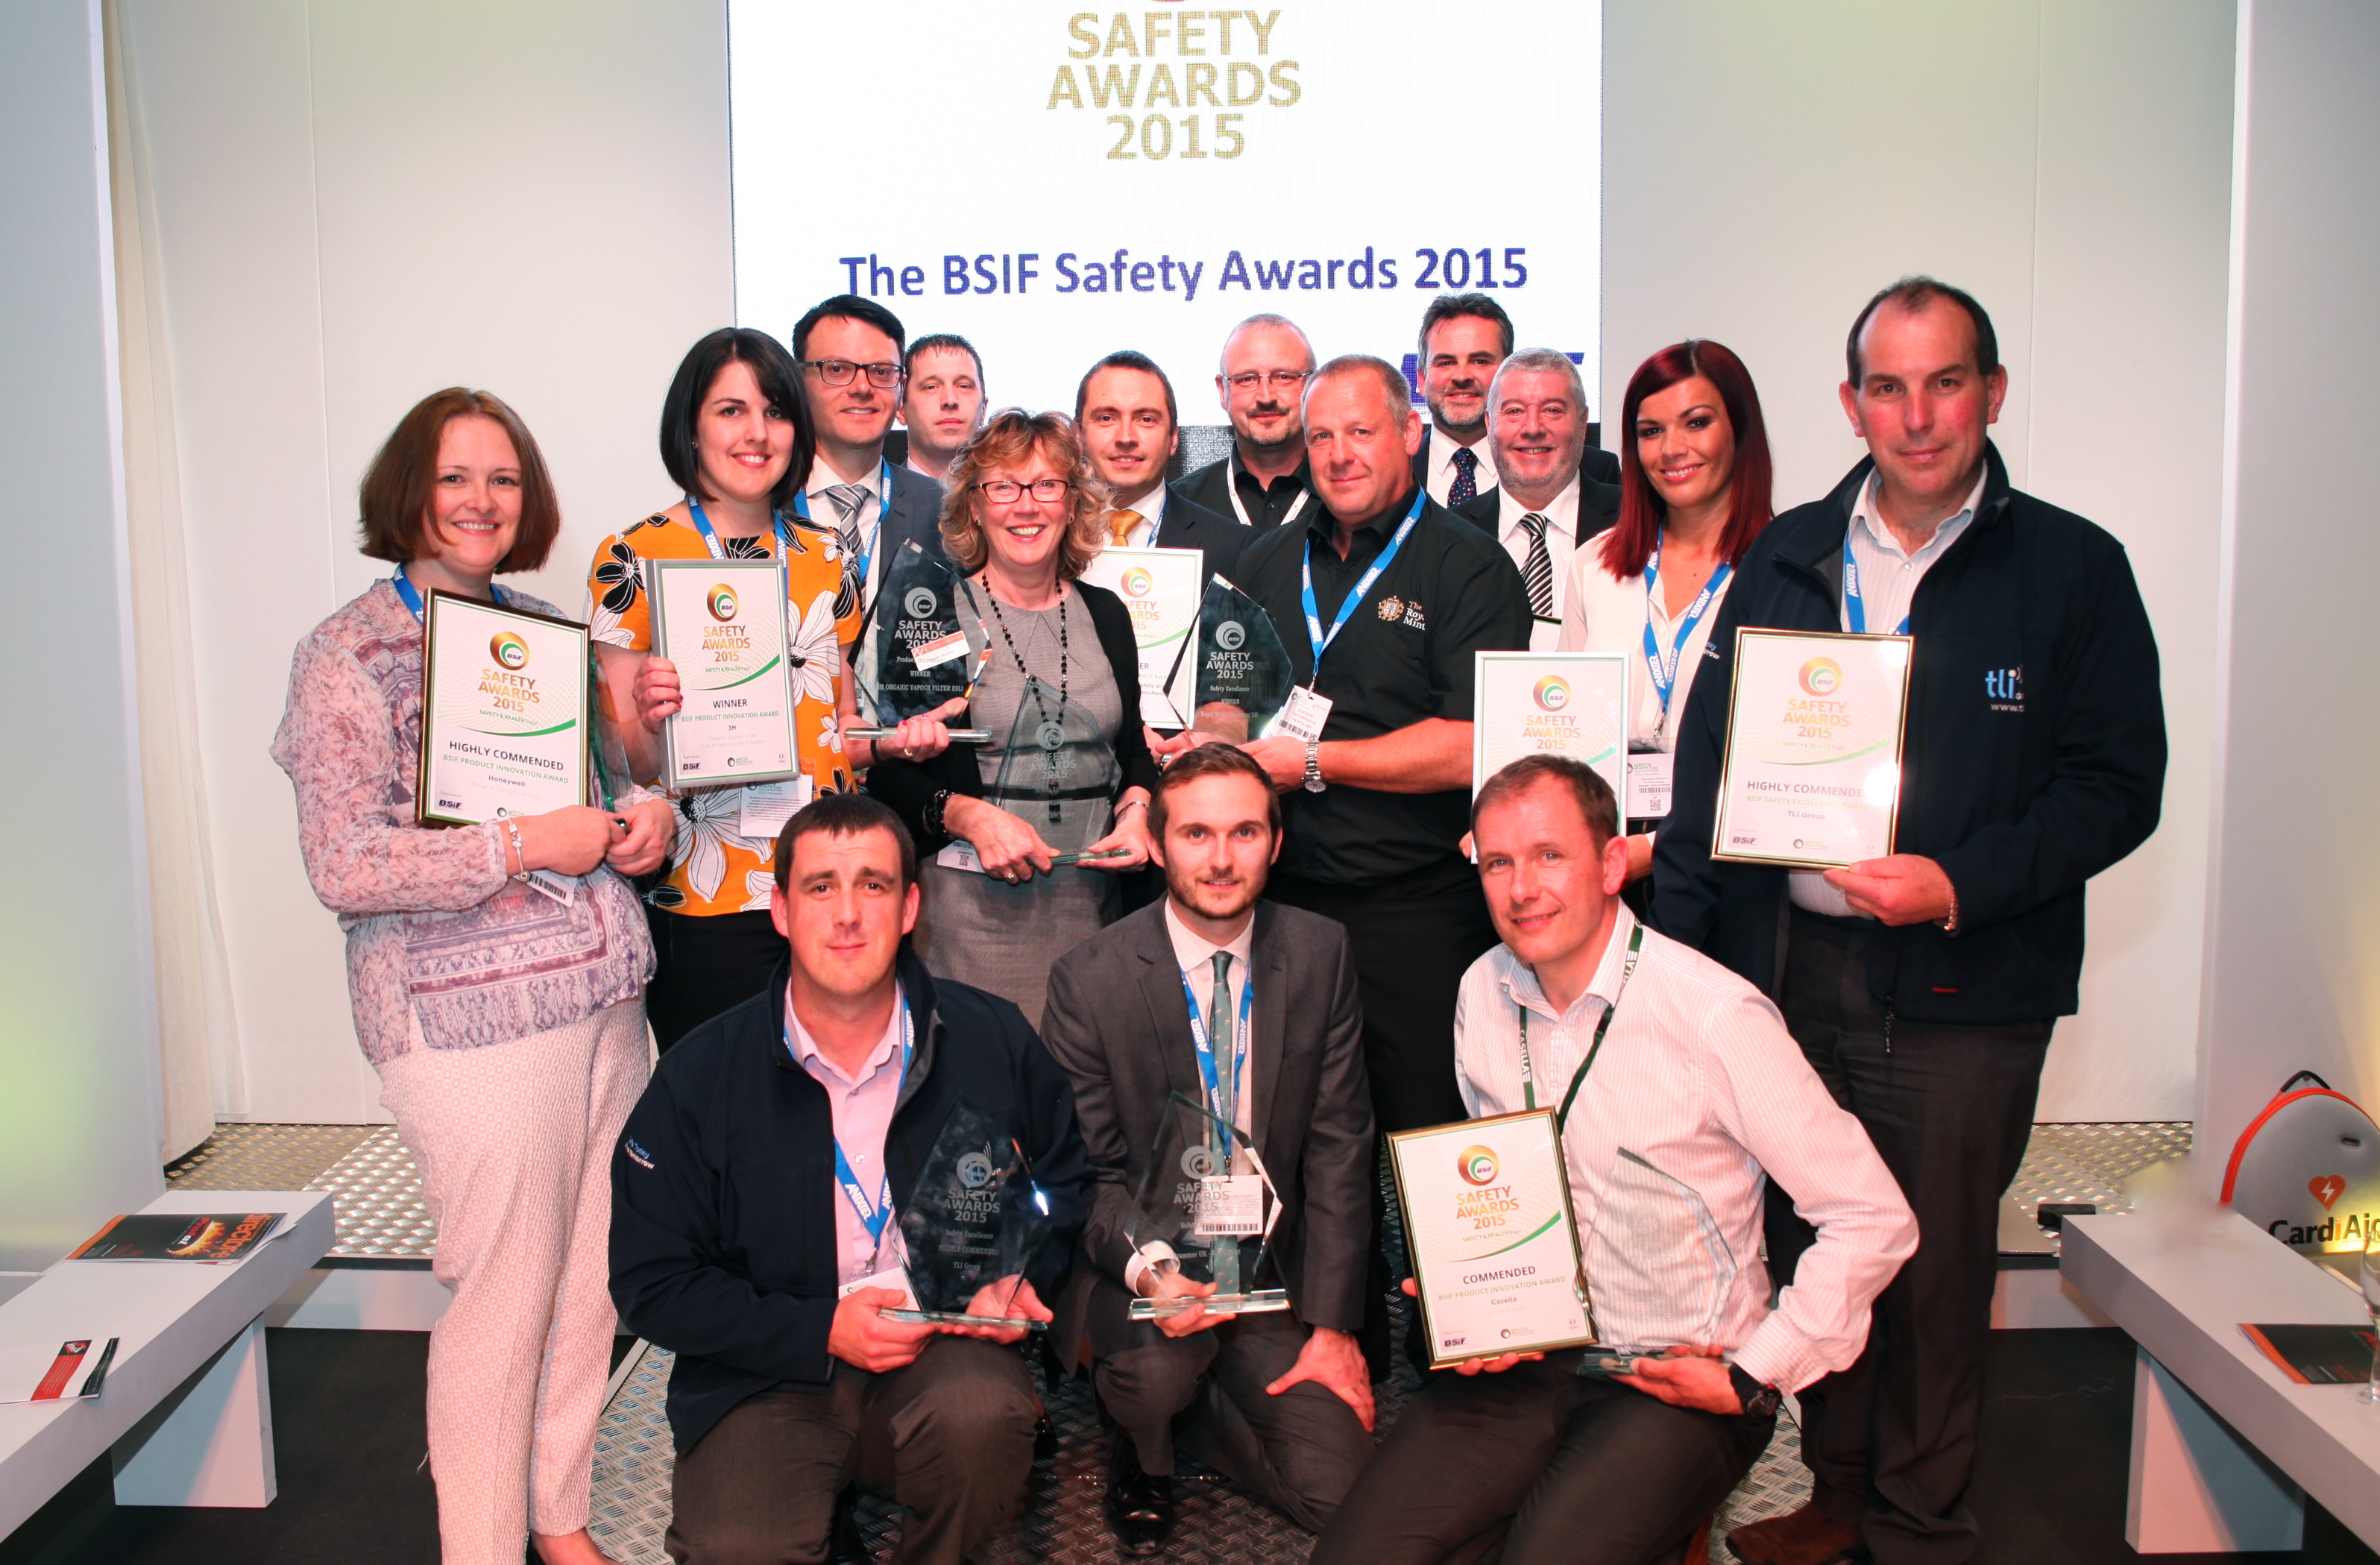 BSIF Safety Award Winners 2015